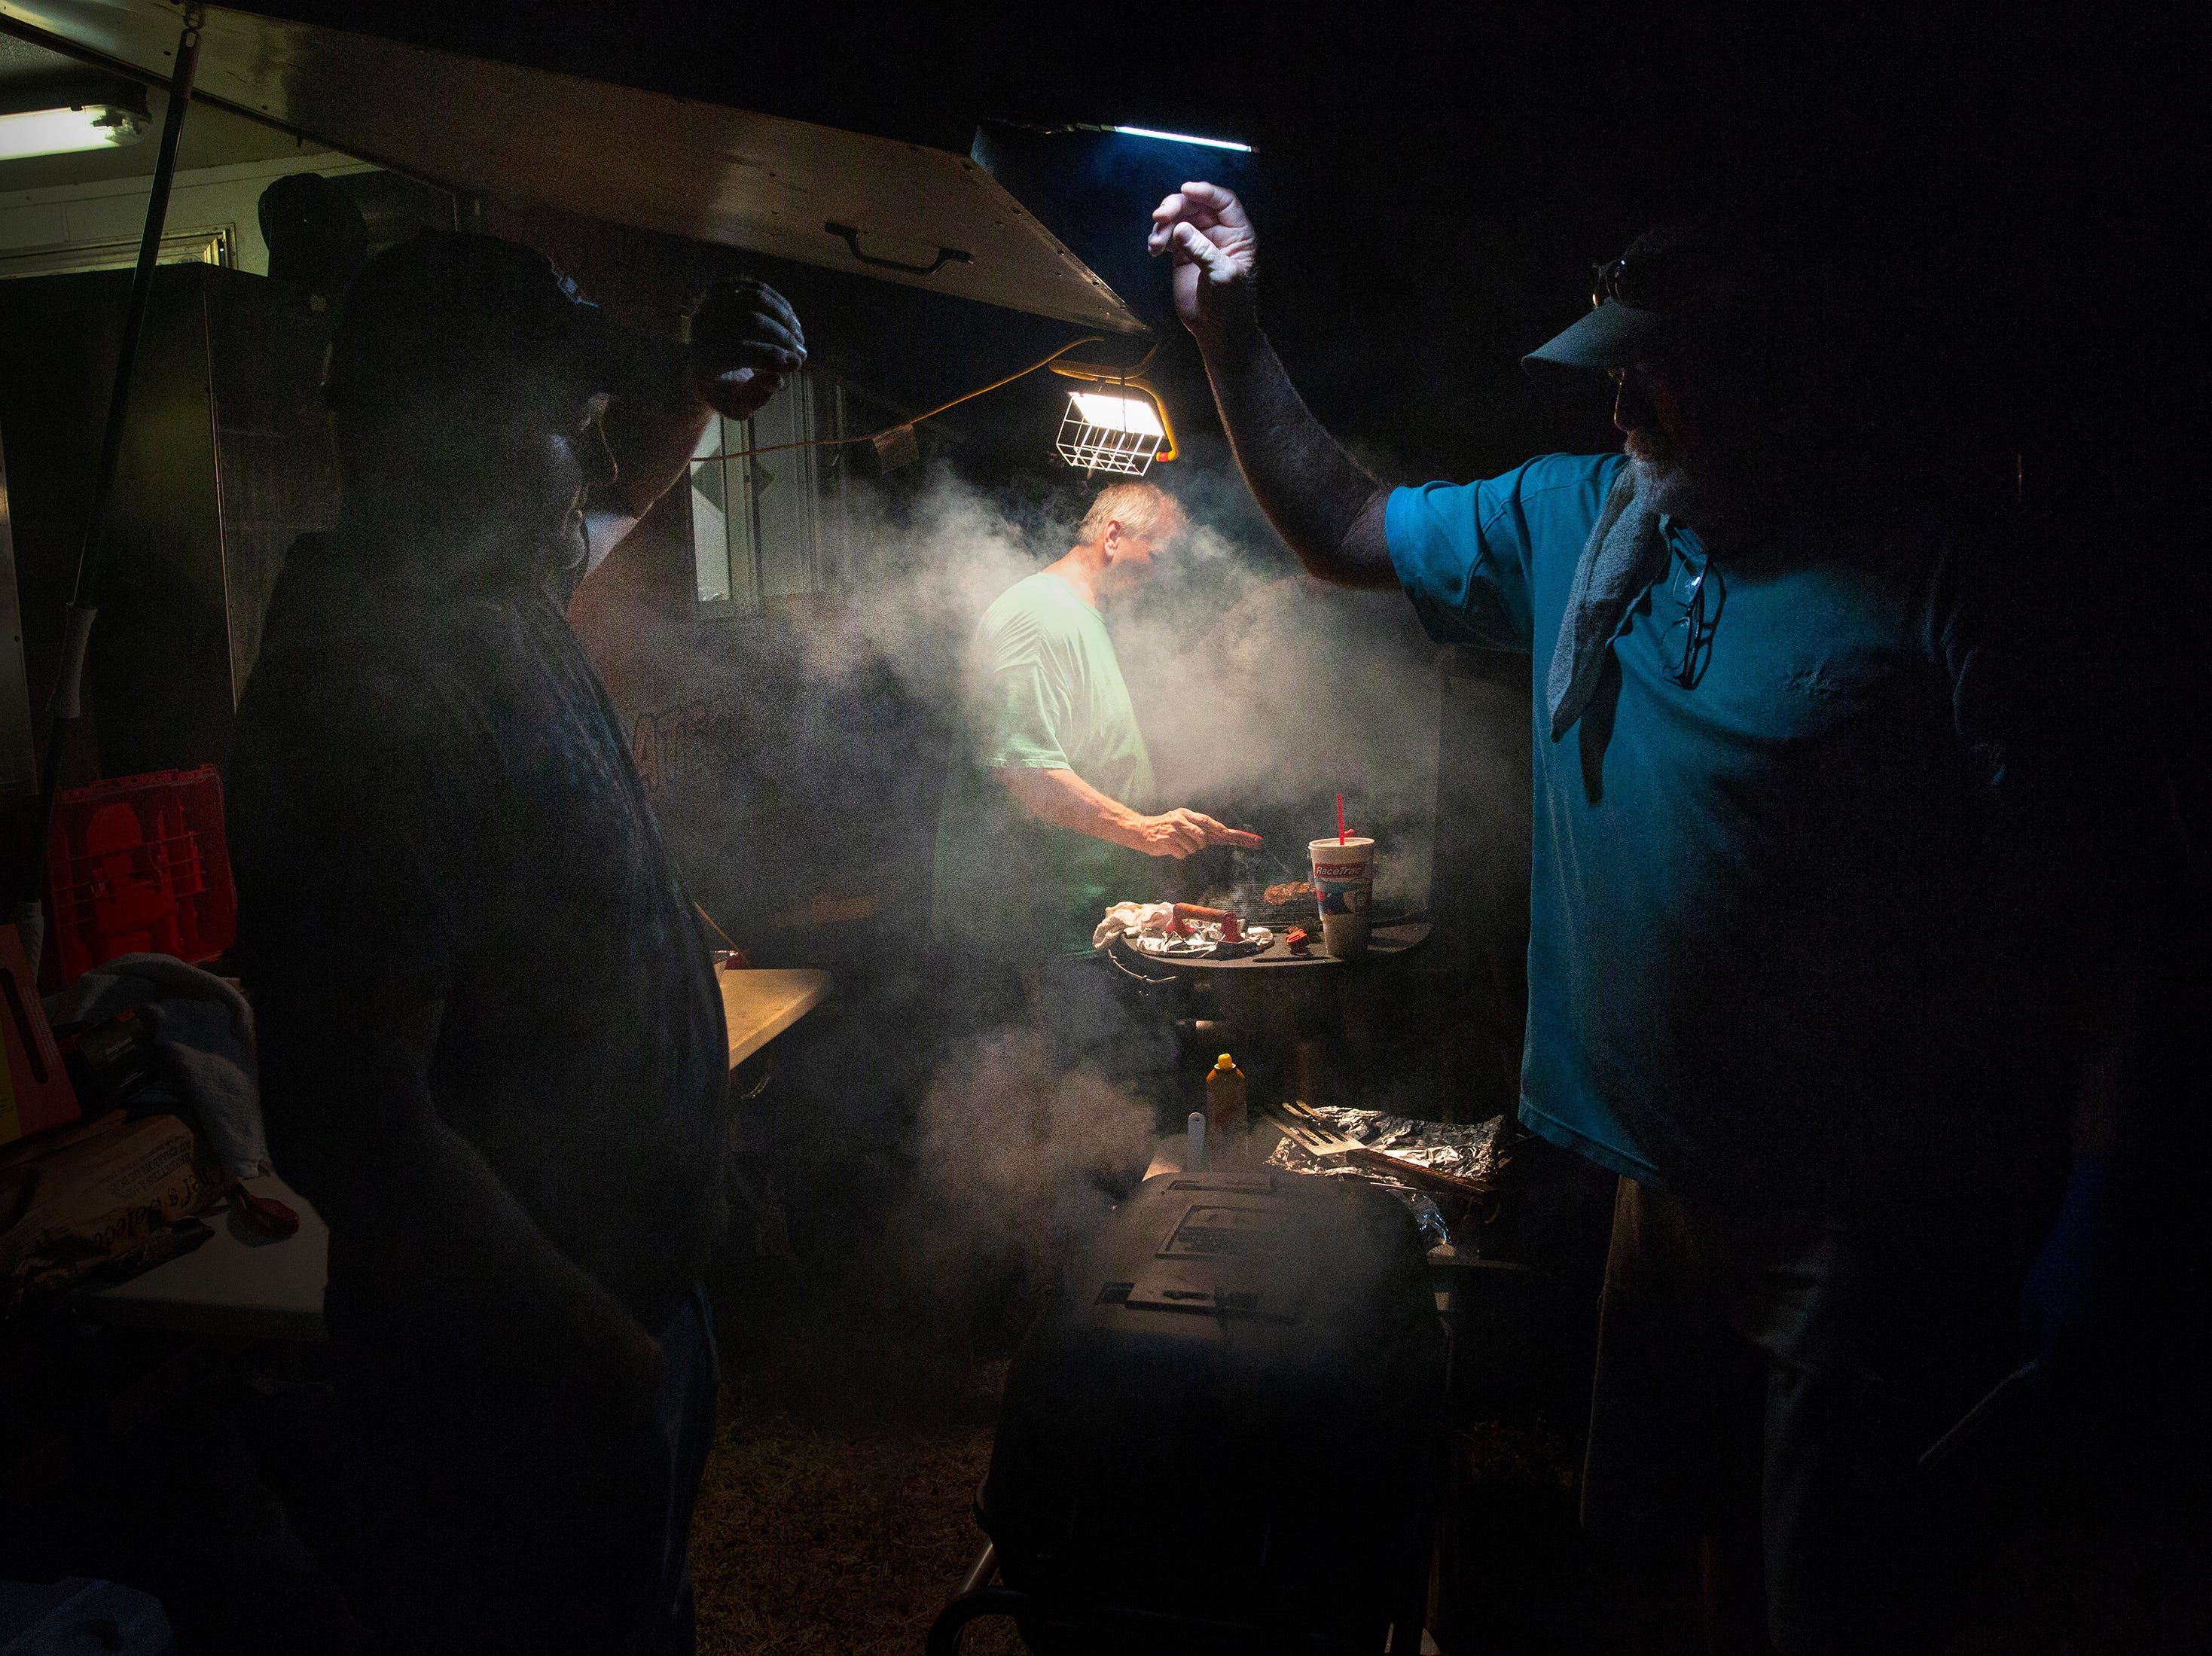 Big Papa's Country Kitchen owner Dana Hillis works on a rib-eye steak during the 7th Annual Big Swamp Smoke Off & Craft Beer Festival's steak competition on Friday, Jan. 4, 2019, at the Collier County Fairgrounds.